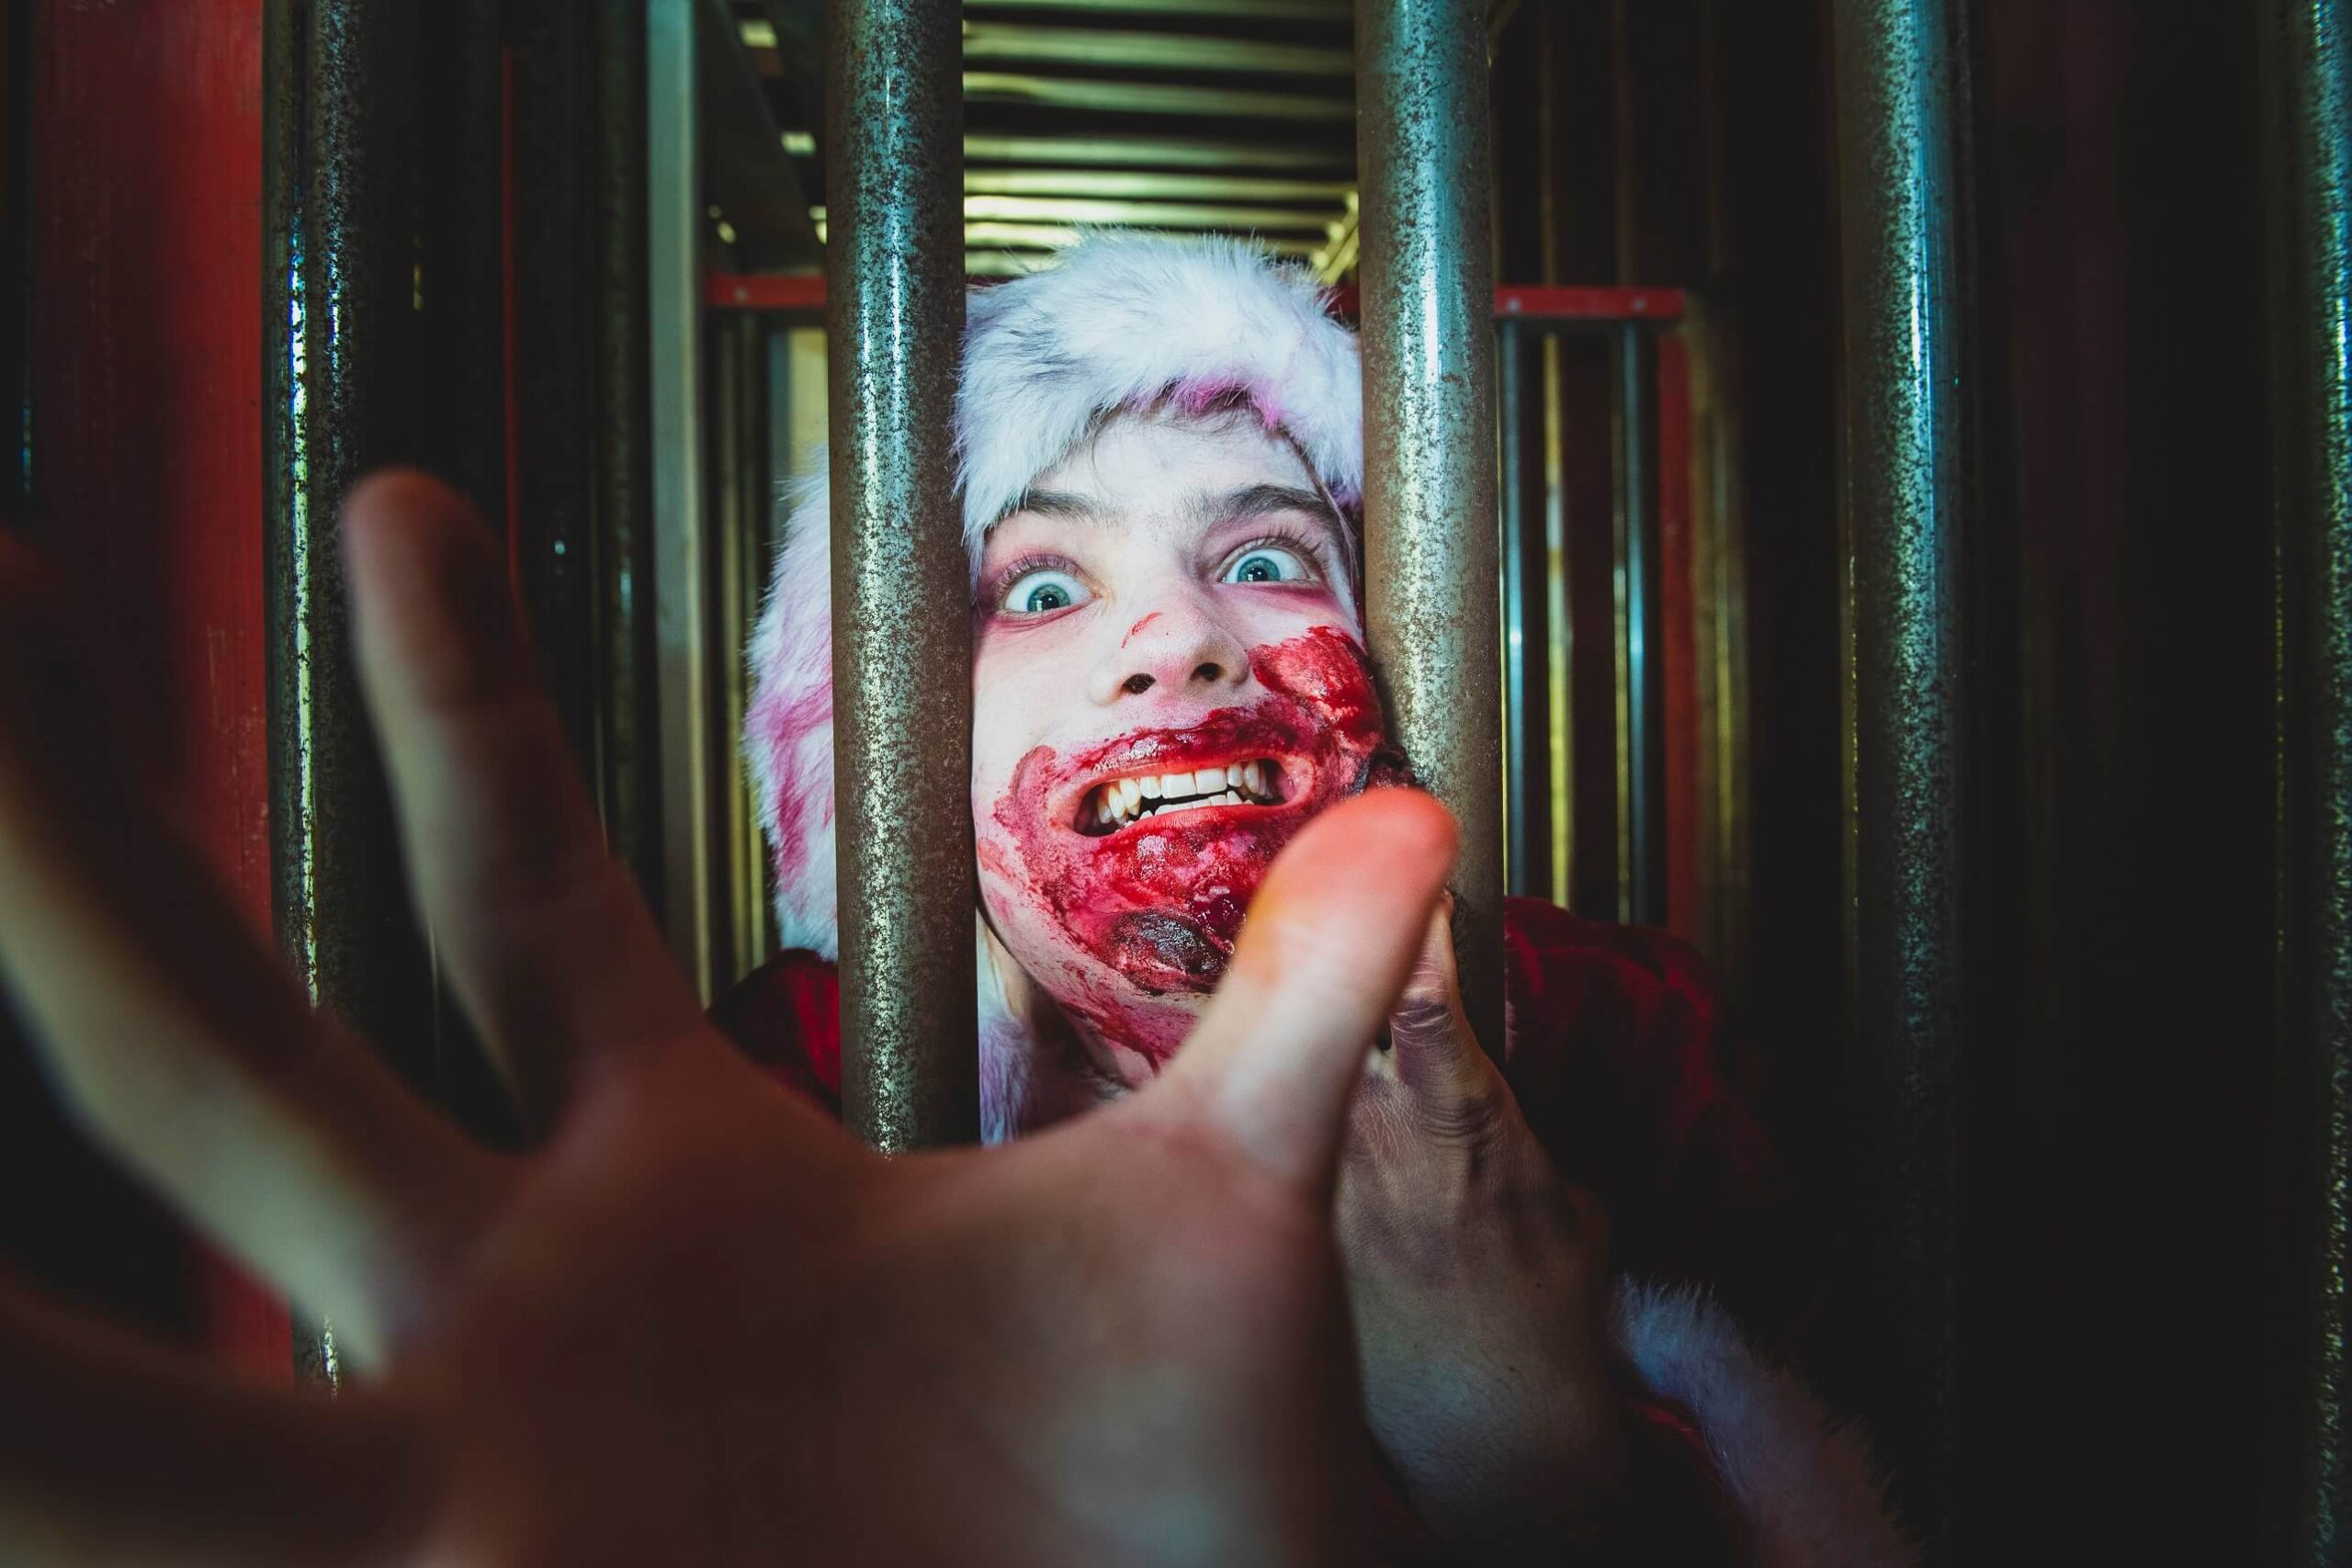 Zombie Santa reaching out from his cage with blood around his mouth